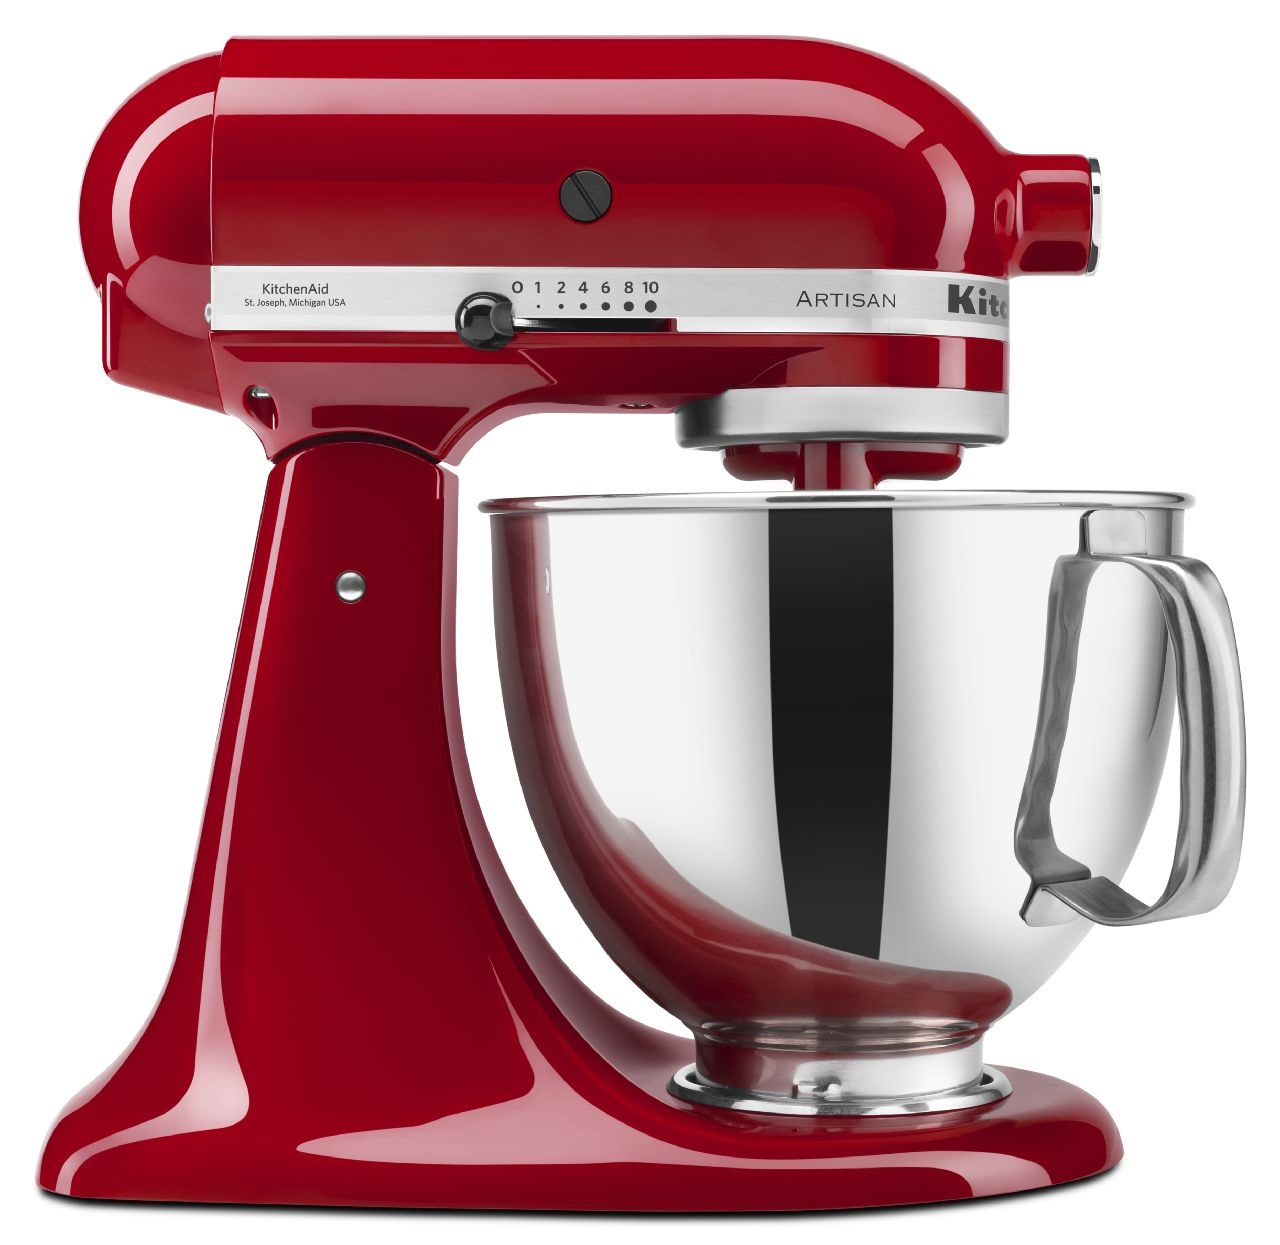 KitchenAid-Refurbished-Artisan-Series-5-Quart-Tilt-Head-Stand-Mixer-RRK150 thumbnail 49